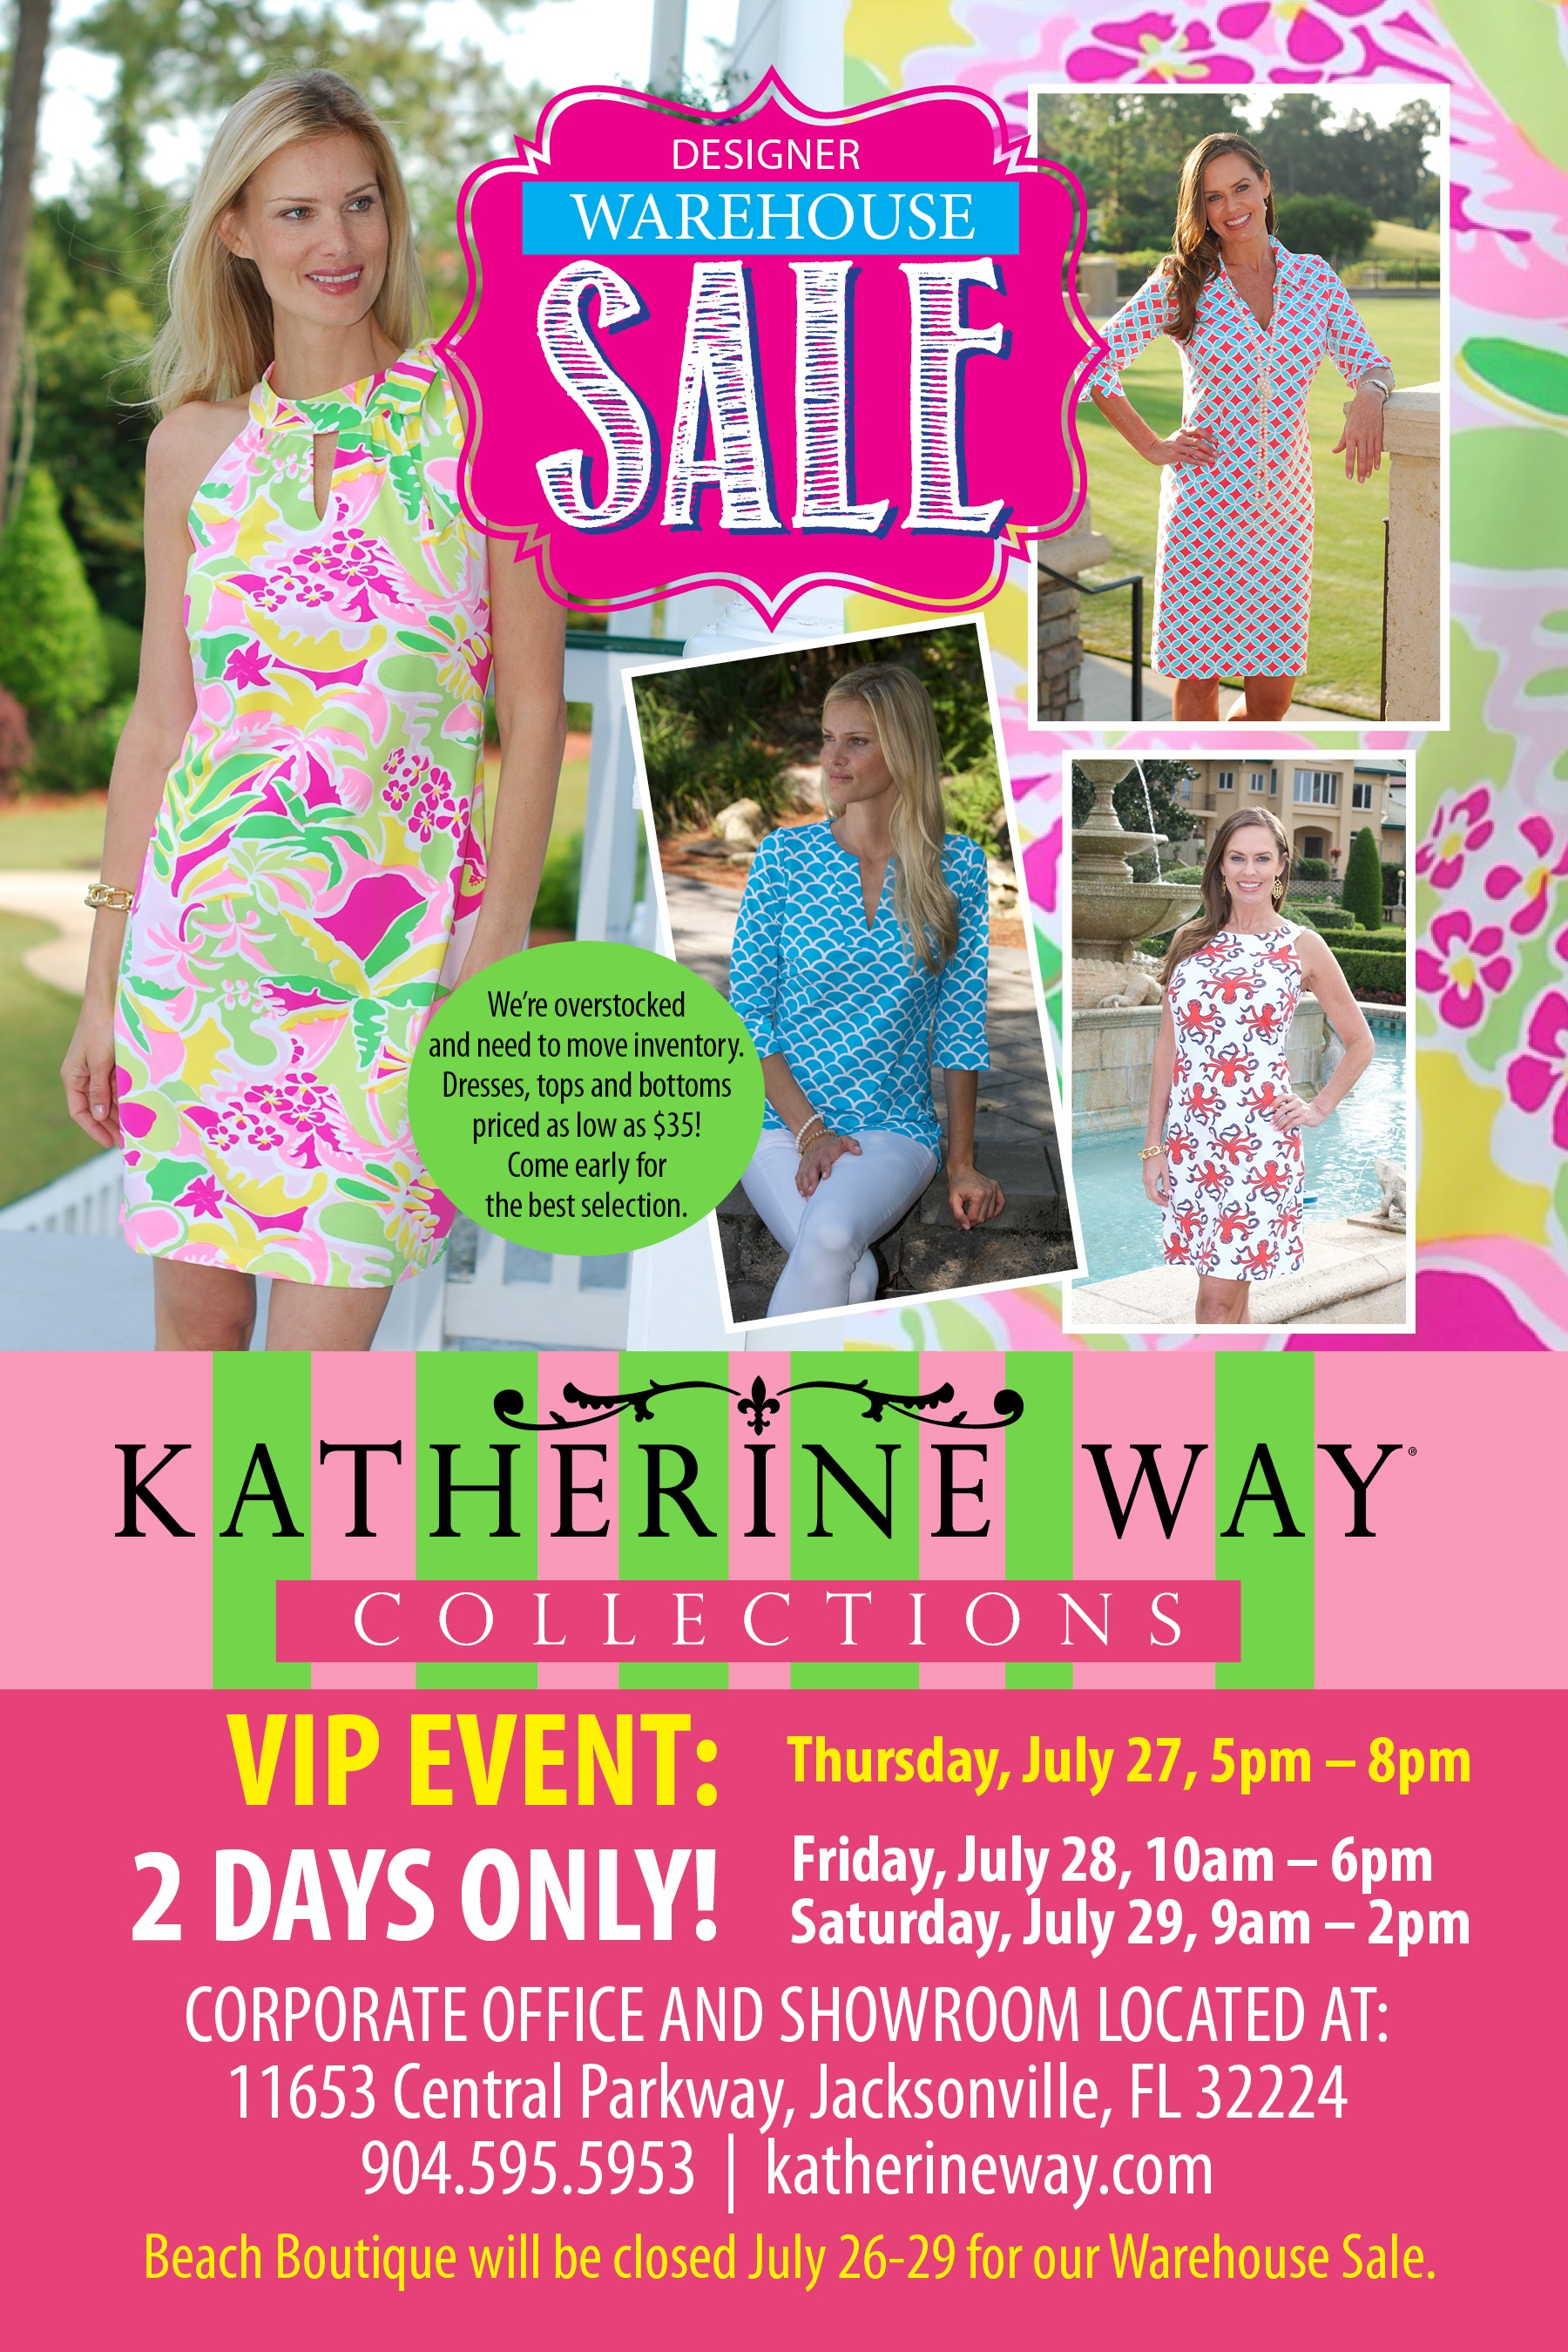 Katherine Way Warehouse Sale Invite